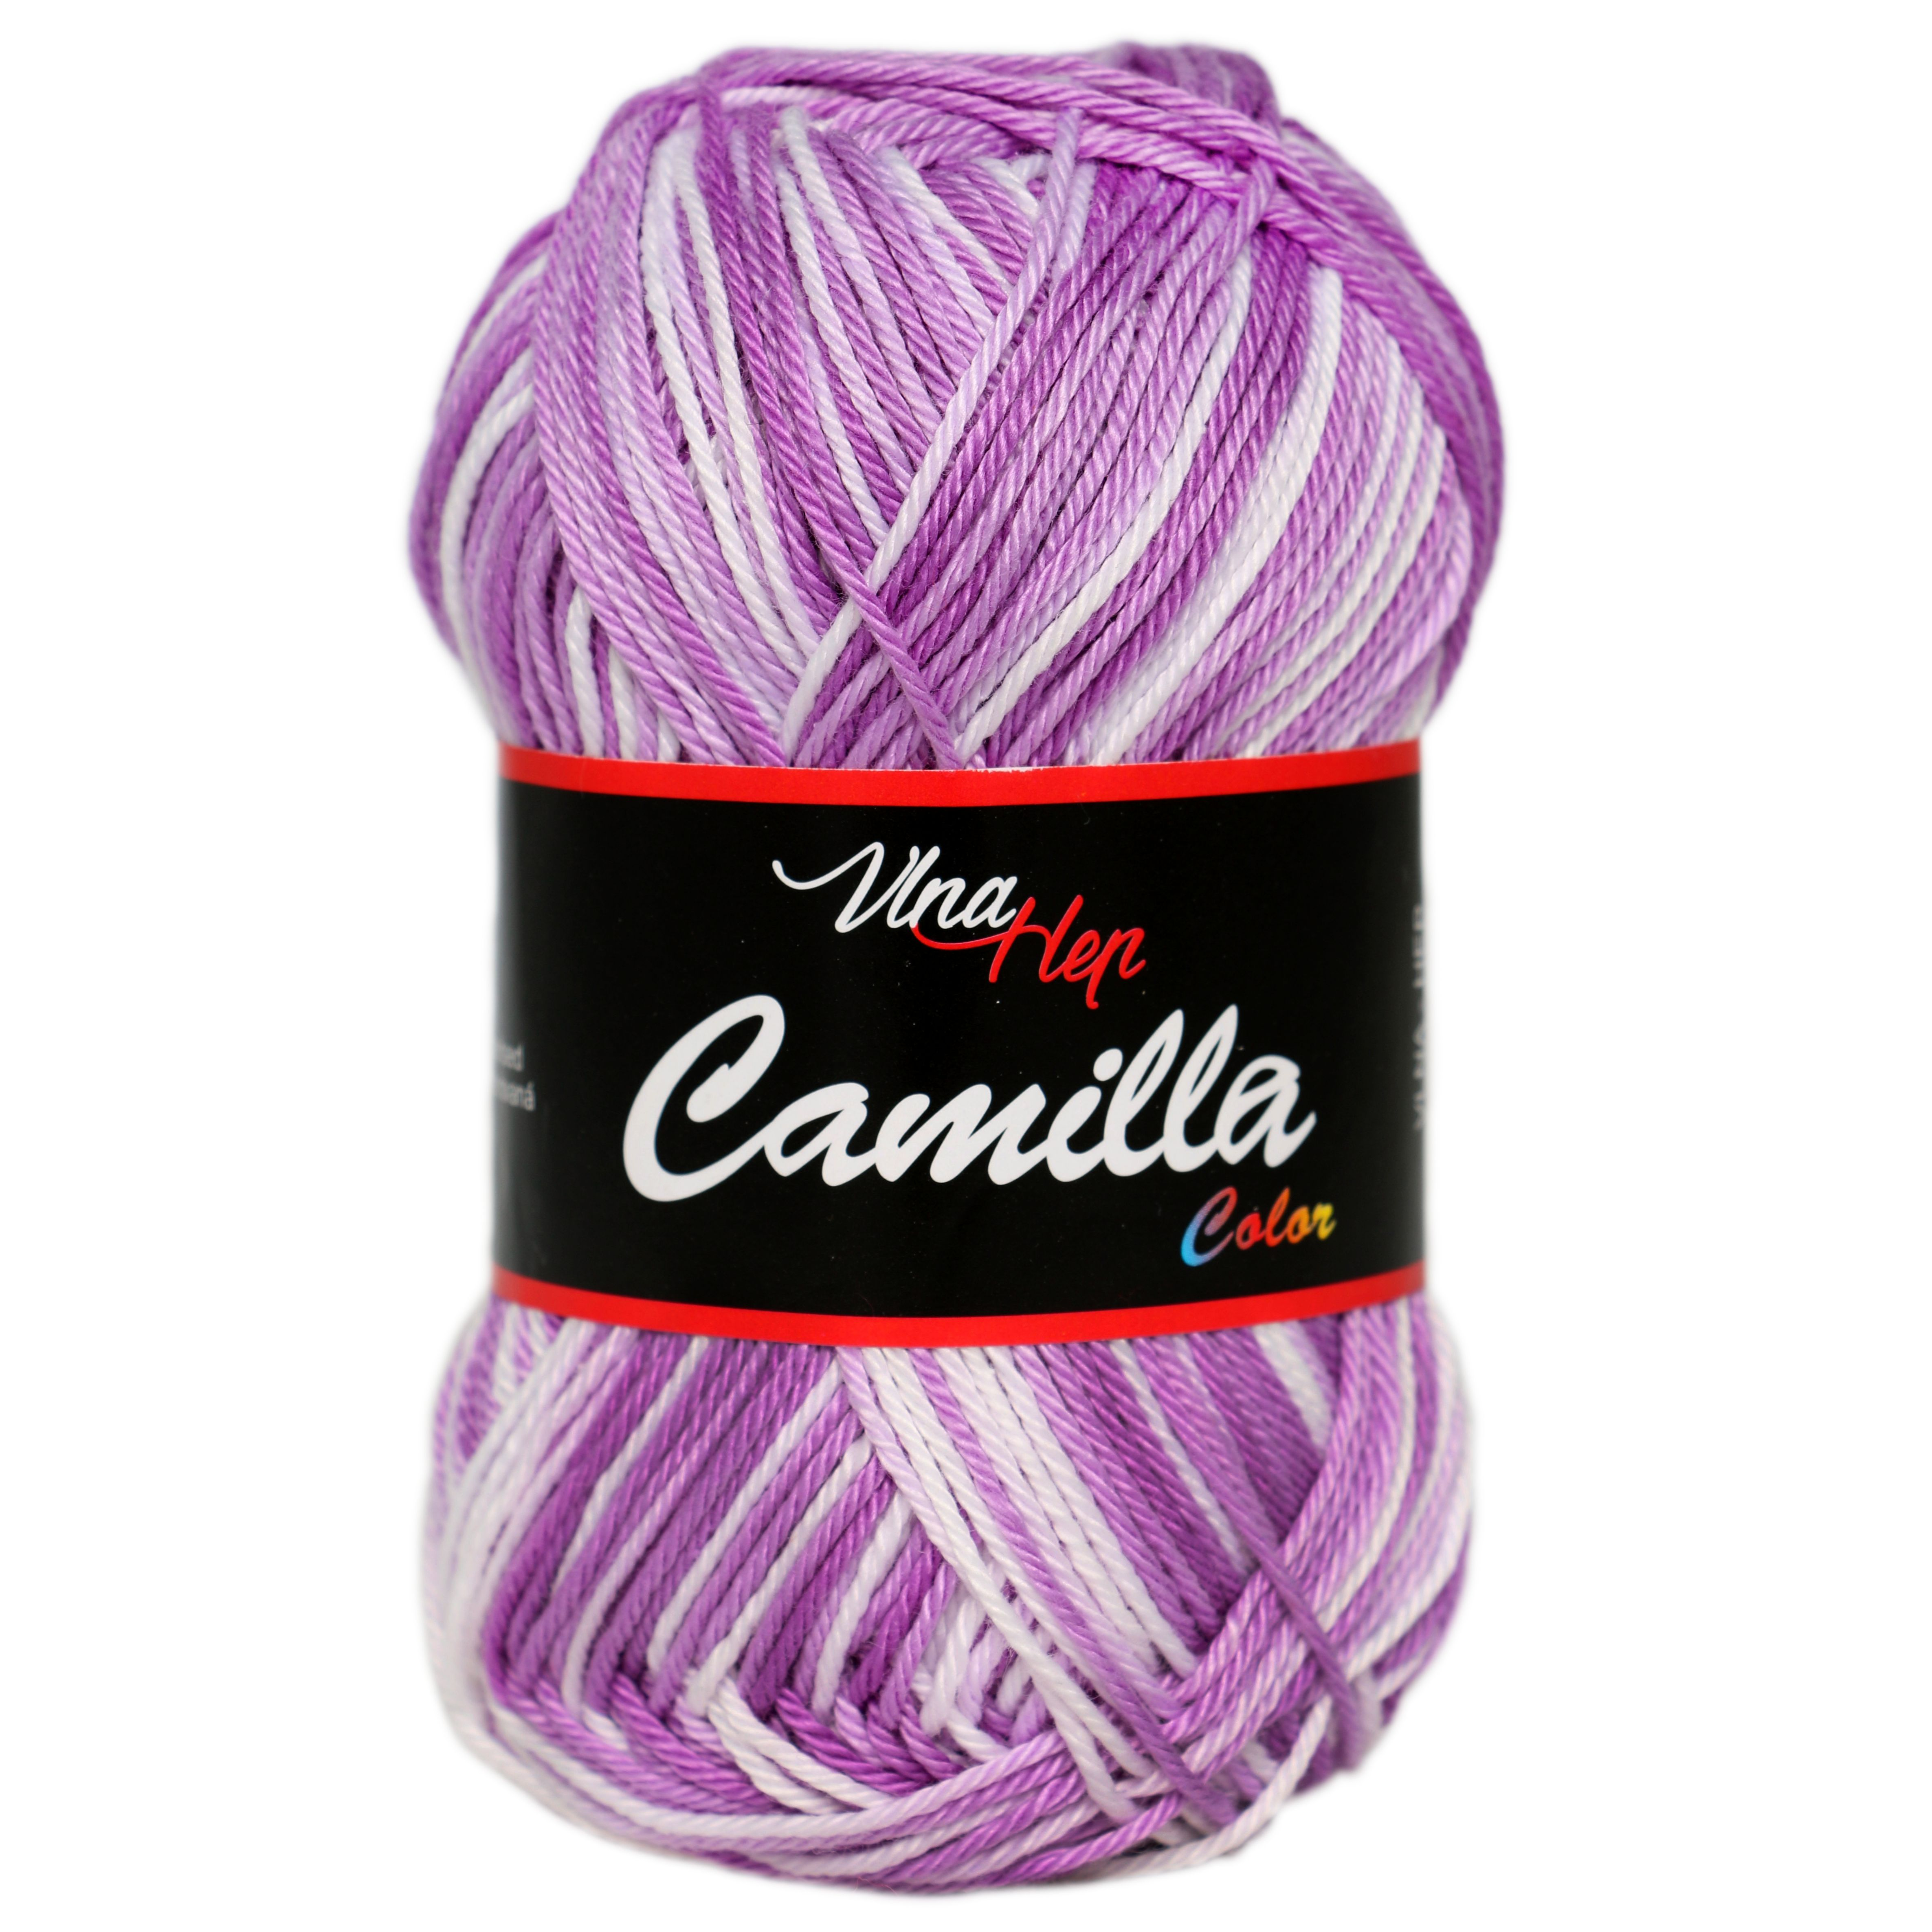 Camilla color 9135